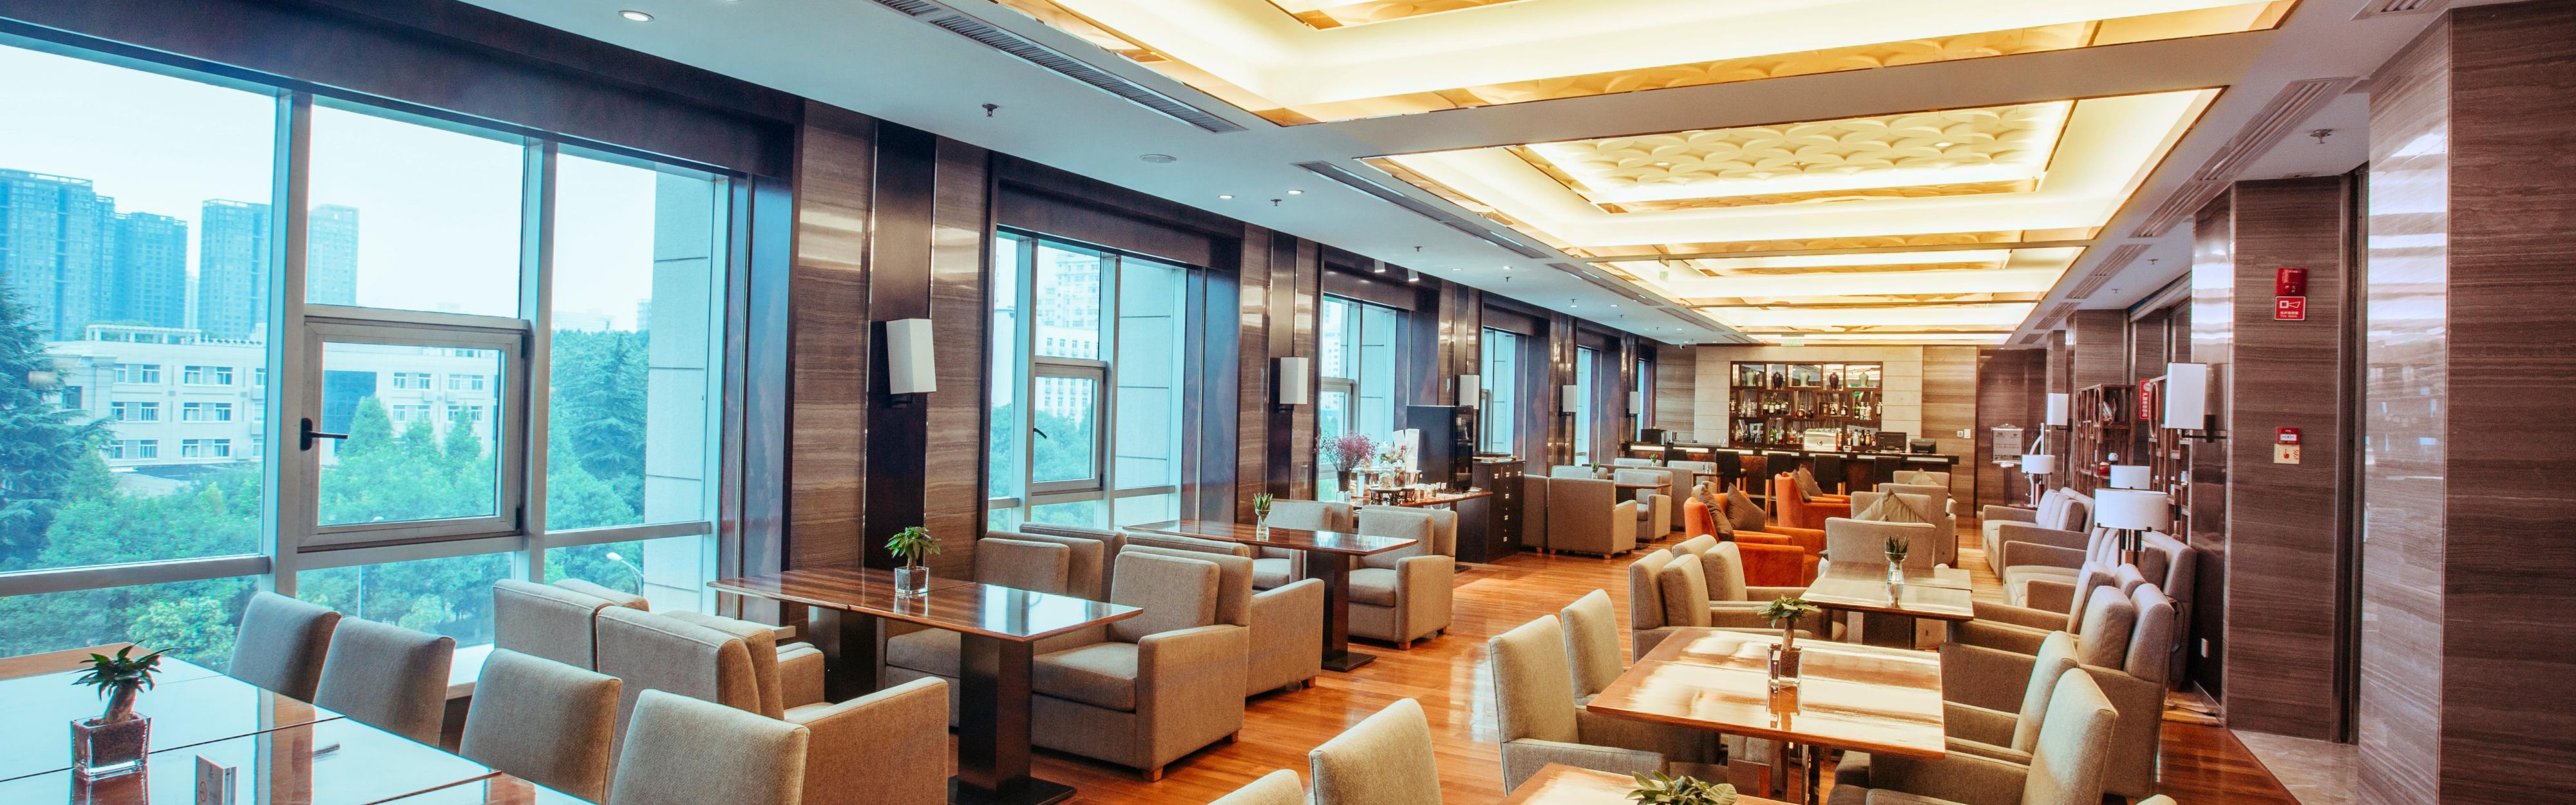 holiday inn xi an big goose pagoda hotel by ihg rh ihg com